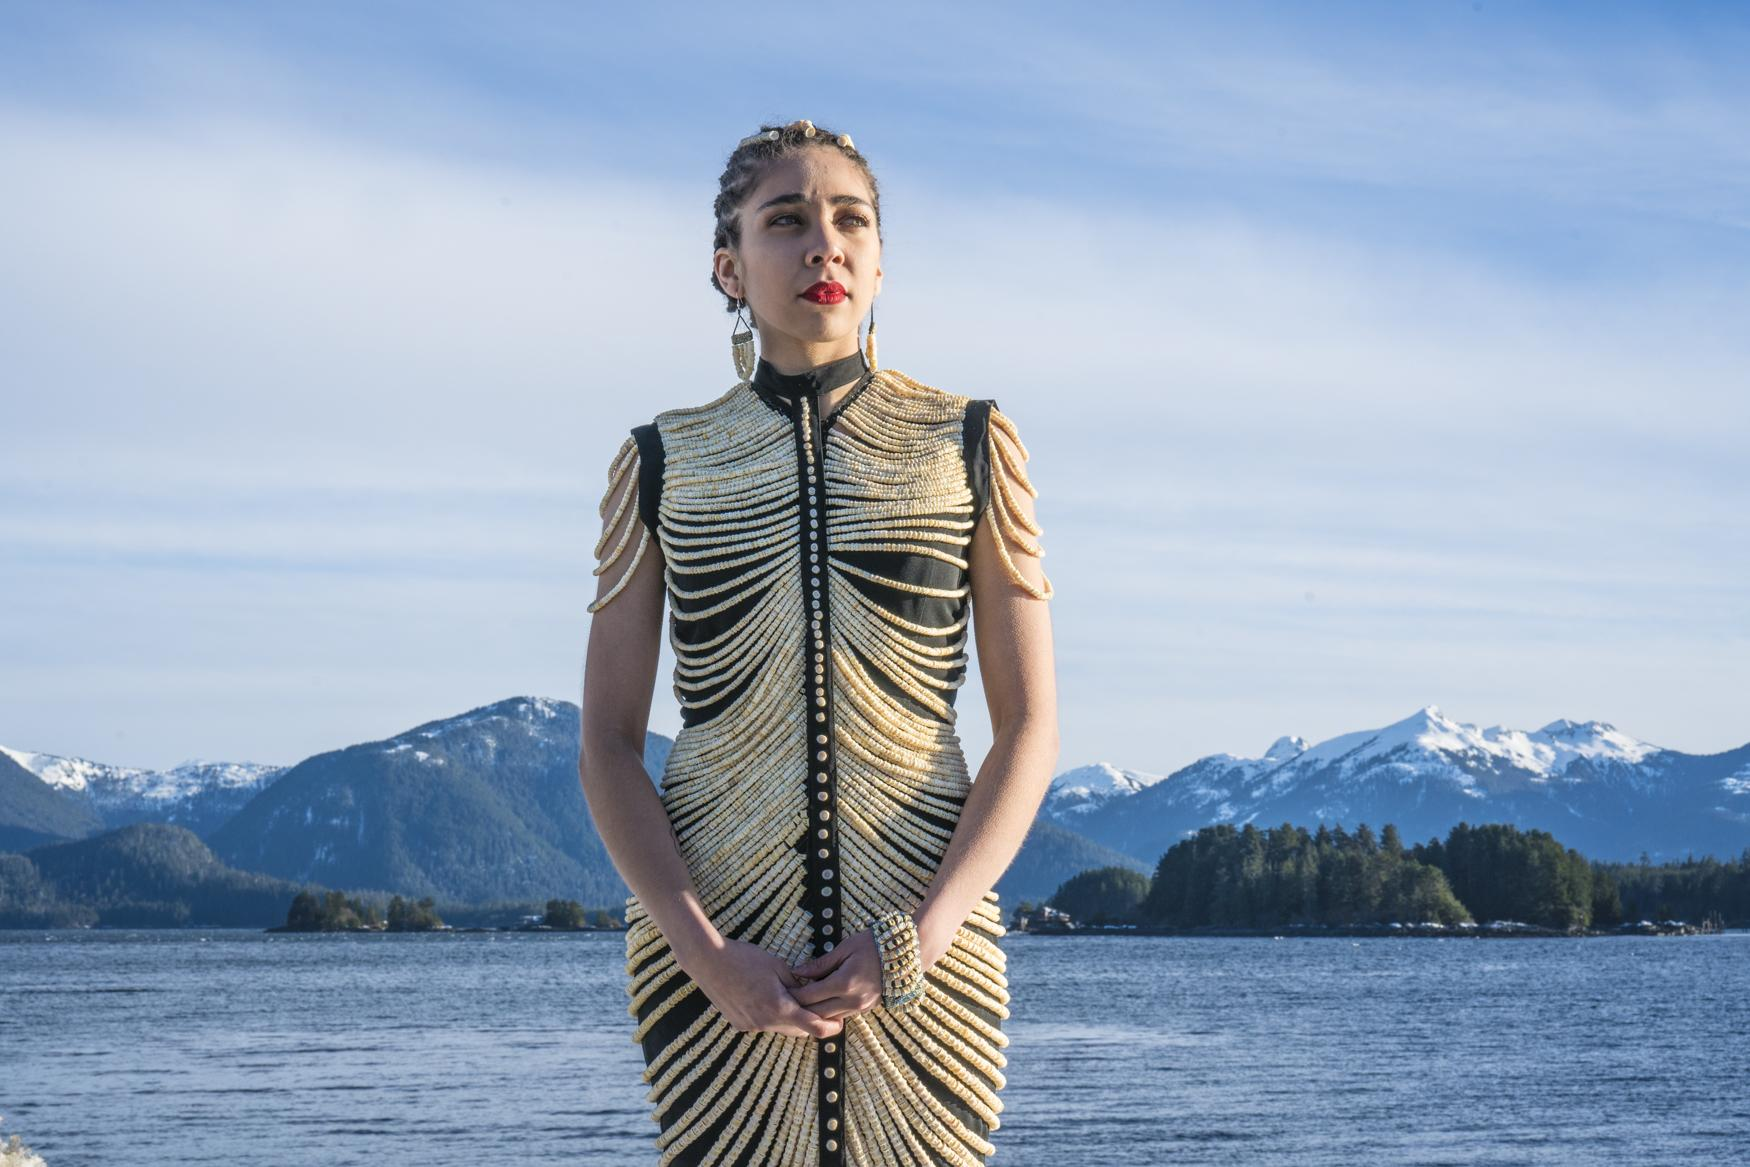 """""""Salmon connect us all. They are in our waters, on the beach, in our forests, in our freezers. Salmon are a part of who we are,"""" says Gibson. Intrigued and inspired, Gibson decided to combine her passion for natural elements with her interest in wearable arts and fashion. She began collecting, dreaming and eventually, imagining a dress adorned with Alaska's wildbeads.               """